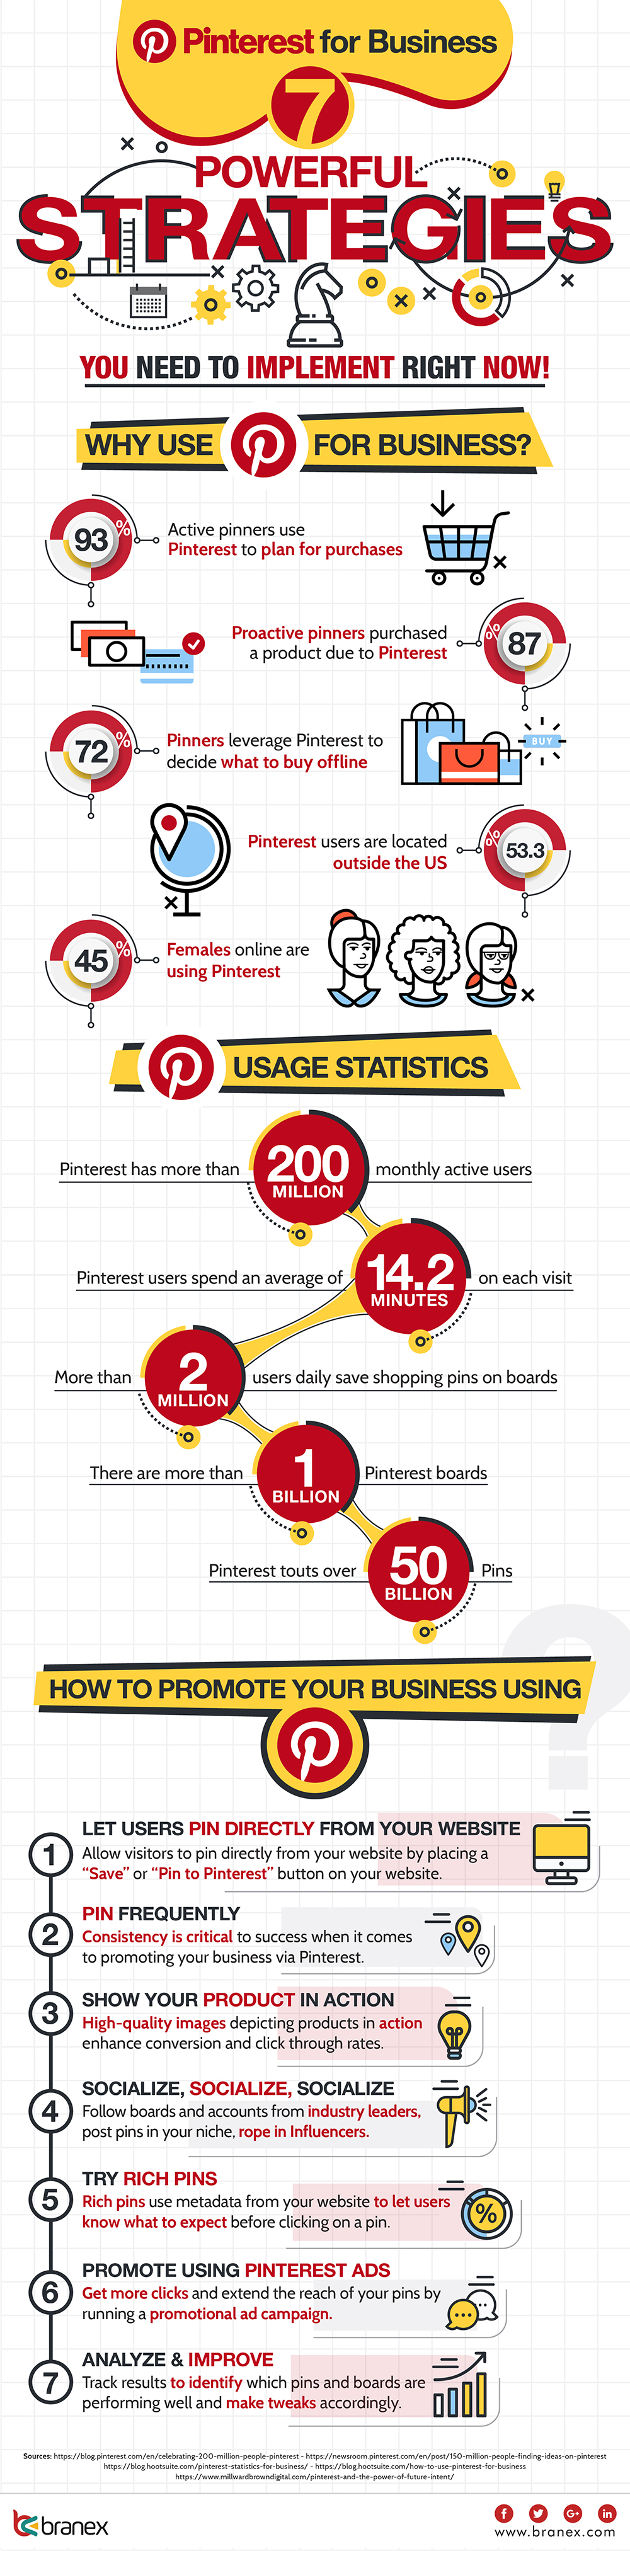 Pinterest for Business: Seven Helpful Tips [Infographic]